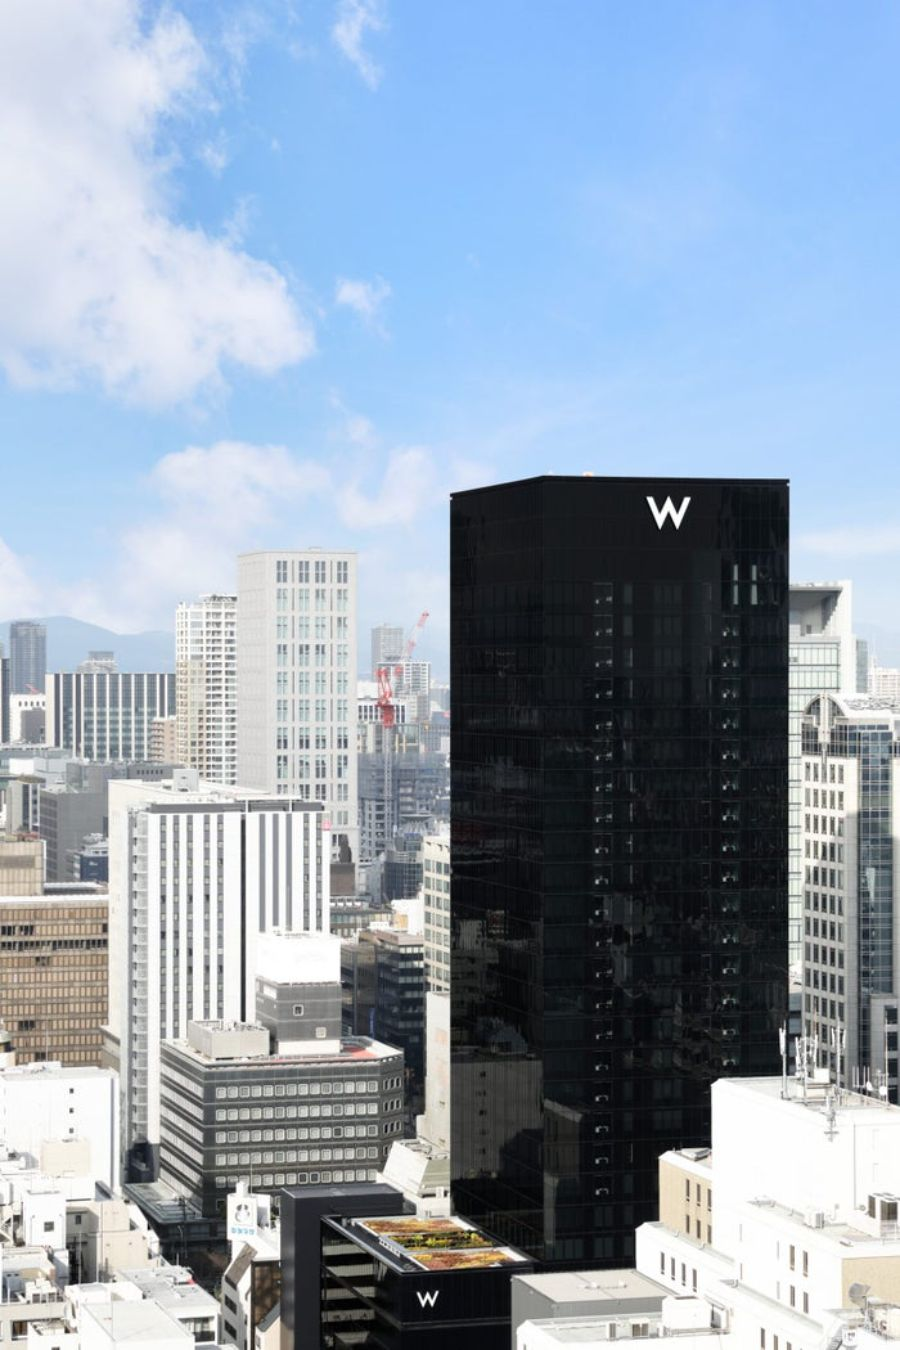 W Osaka, A Luxury Lifestyle Hotel That Just Recently Opened